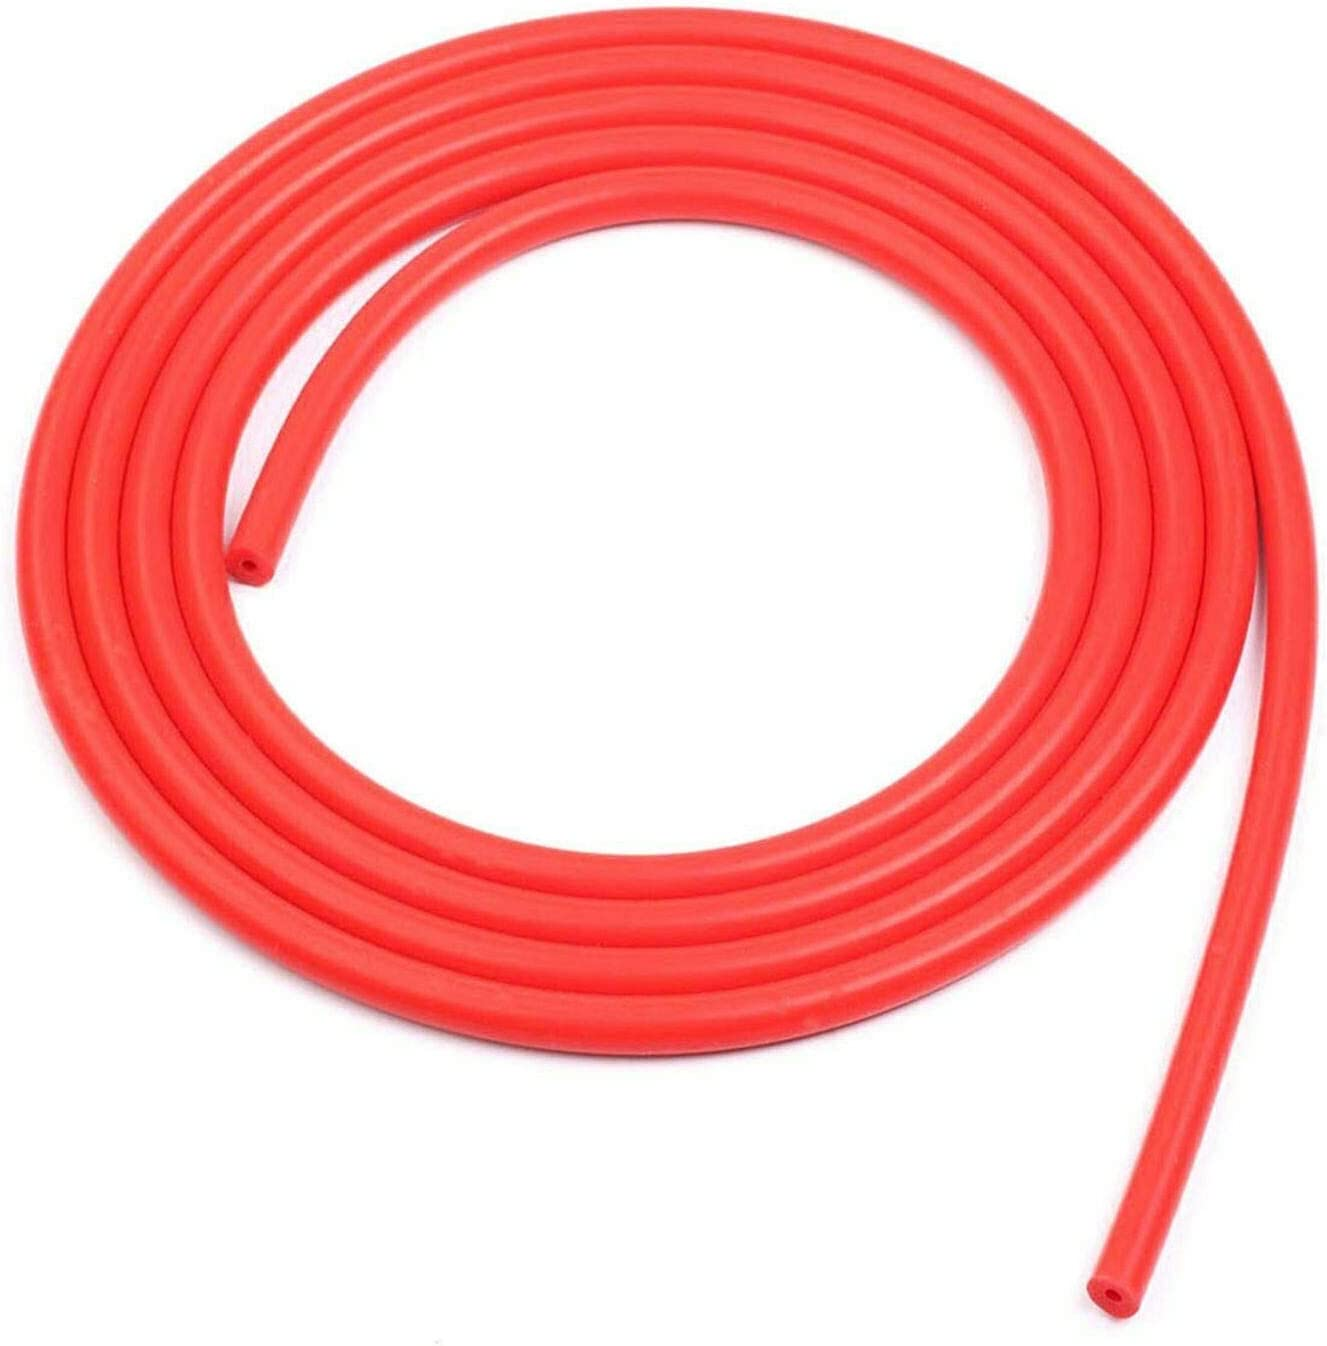 LTI Universal 10 Feet Length Universal 10mm (3/8 Inch) Inner Diameter High Performance Silicone Vacuum Hose Line (10MM, RED)